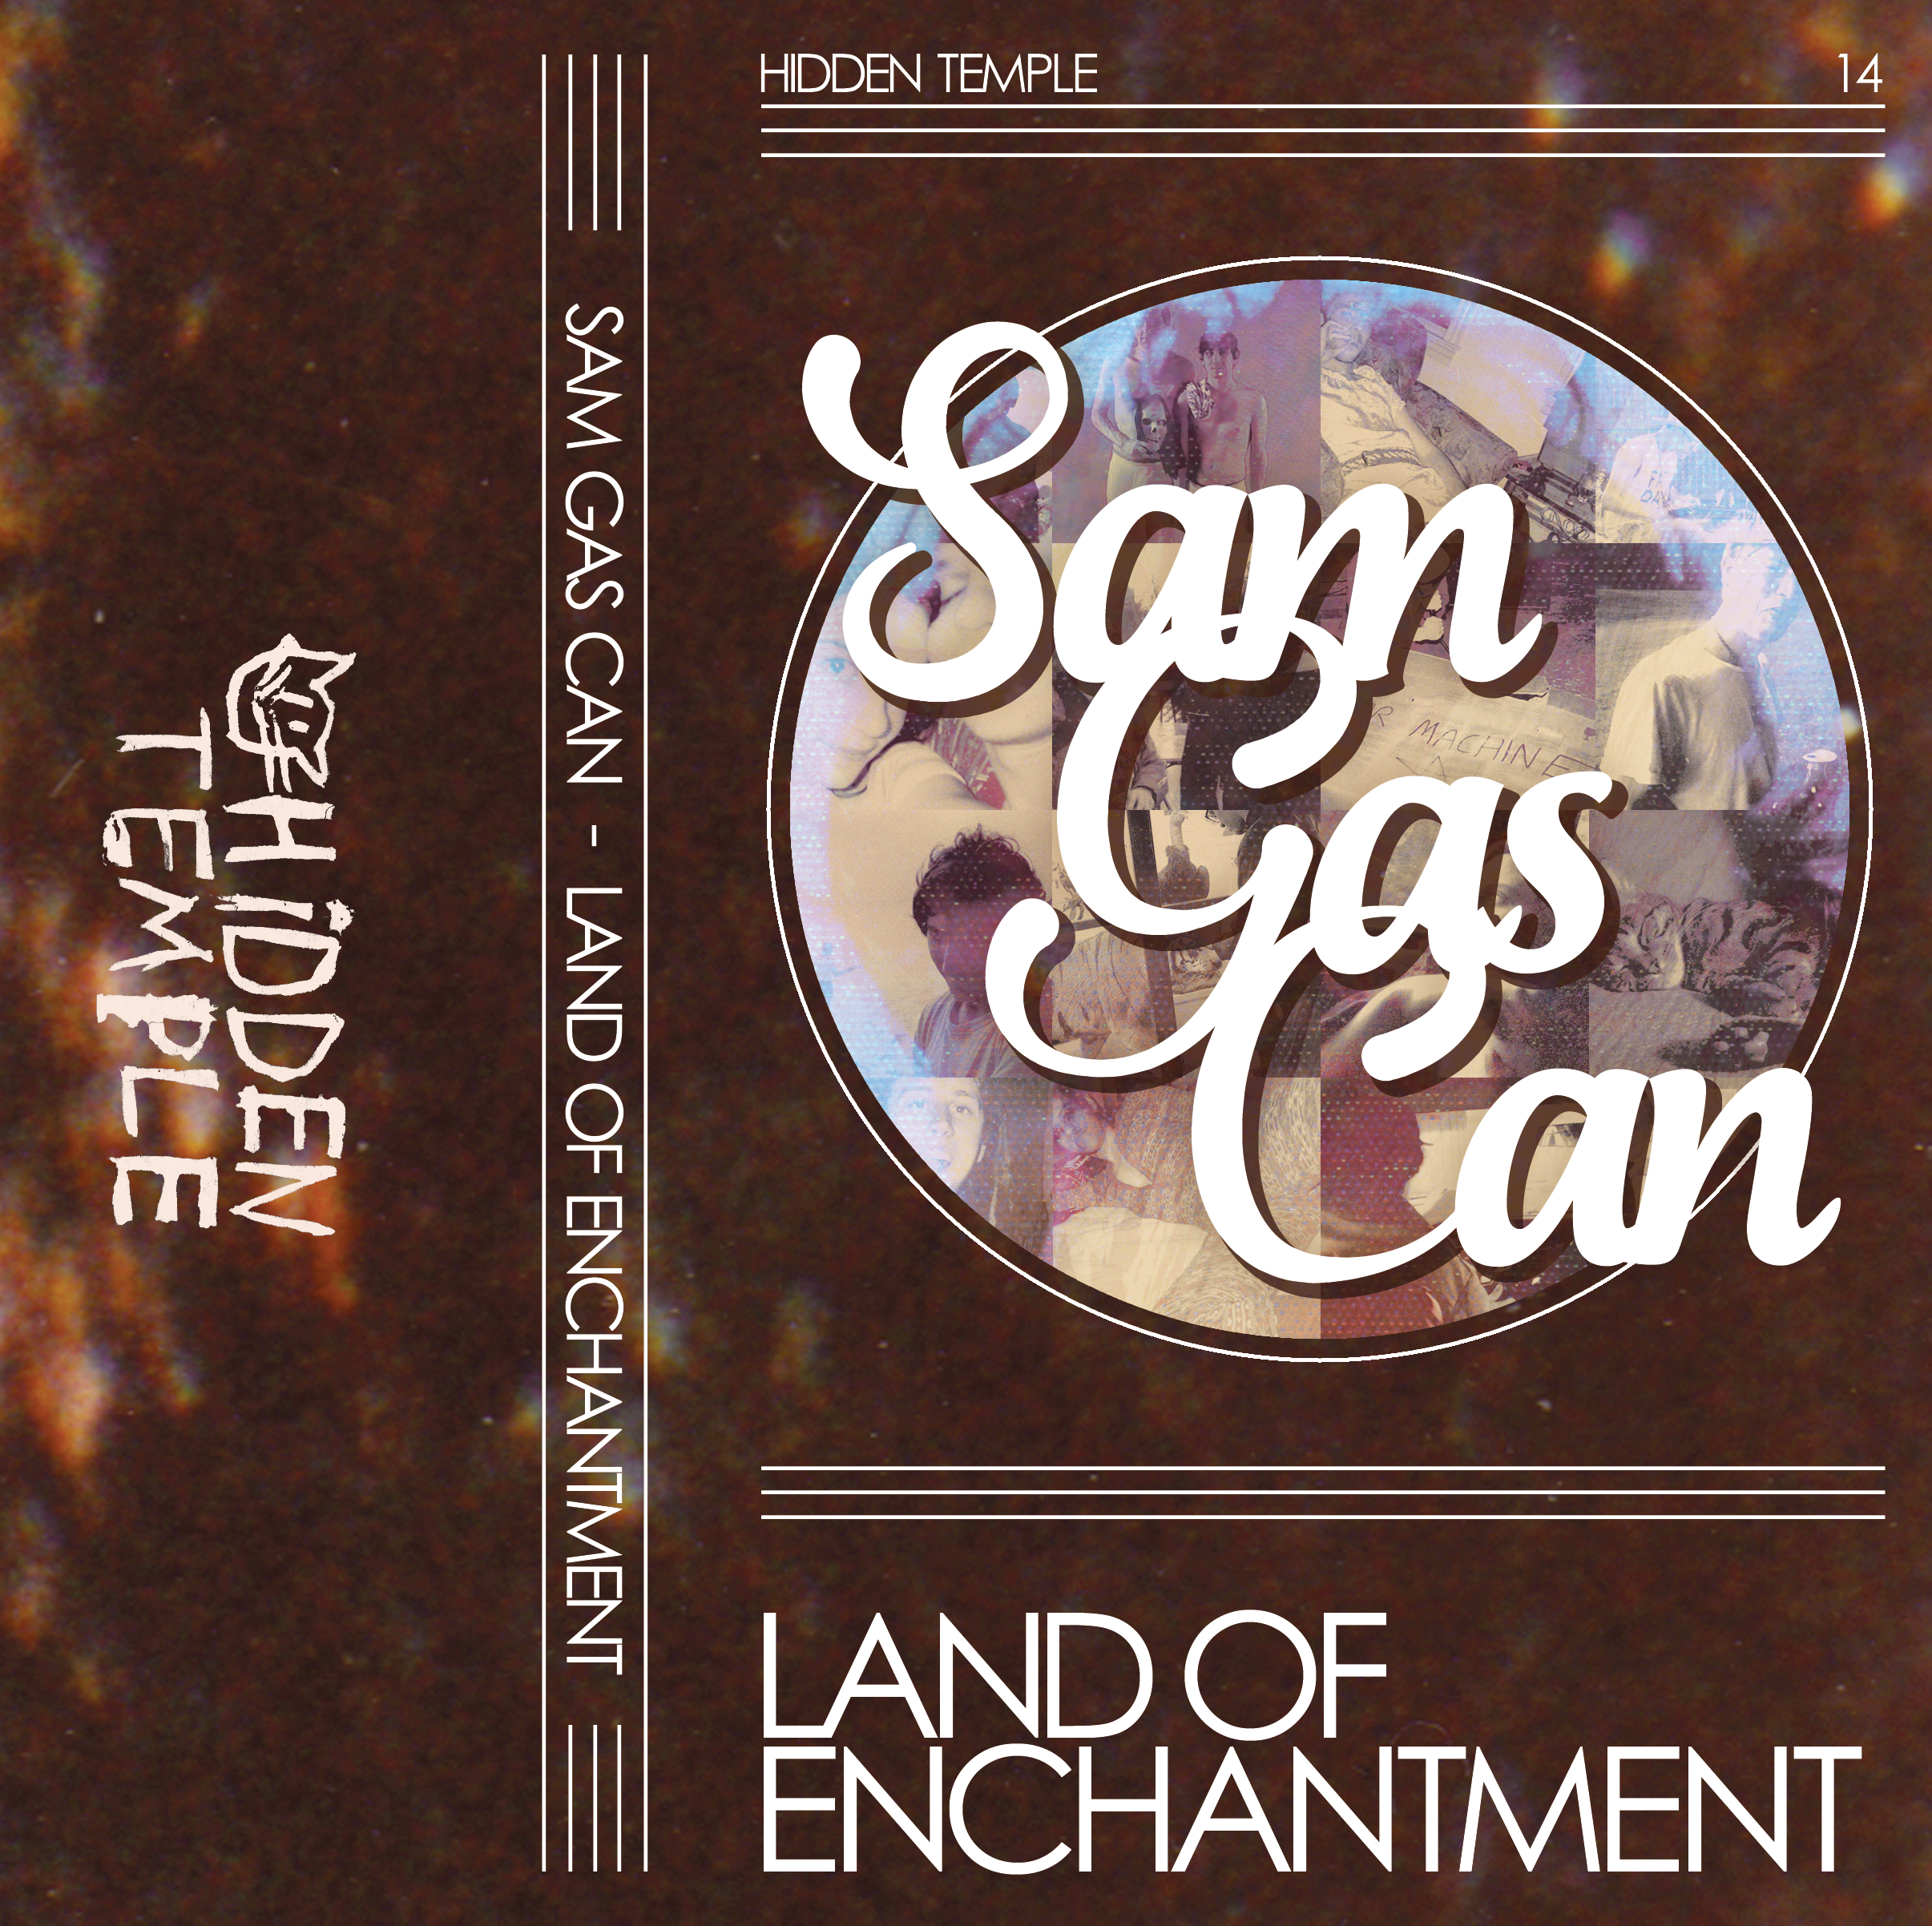 land of enchantment_CROP